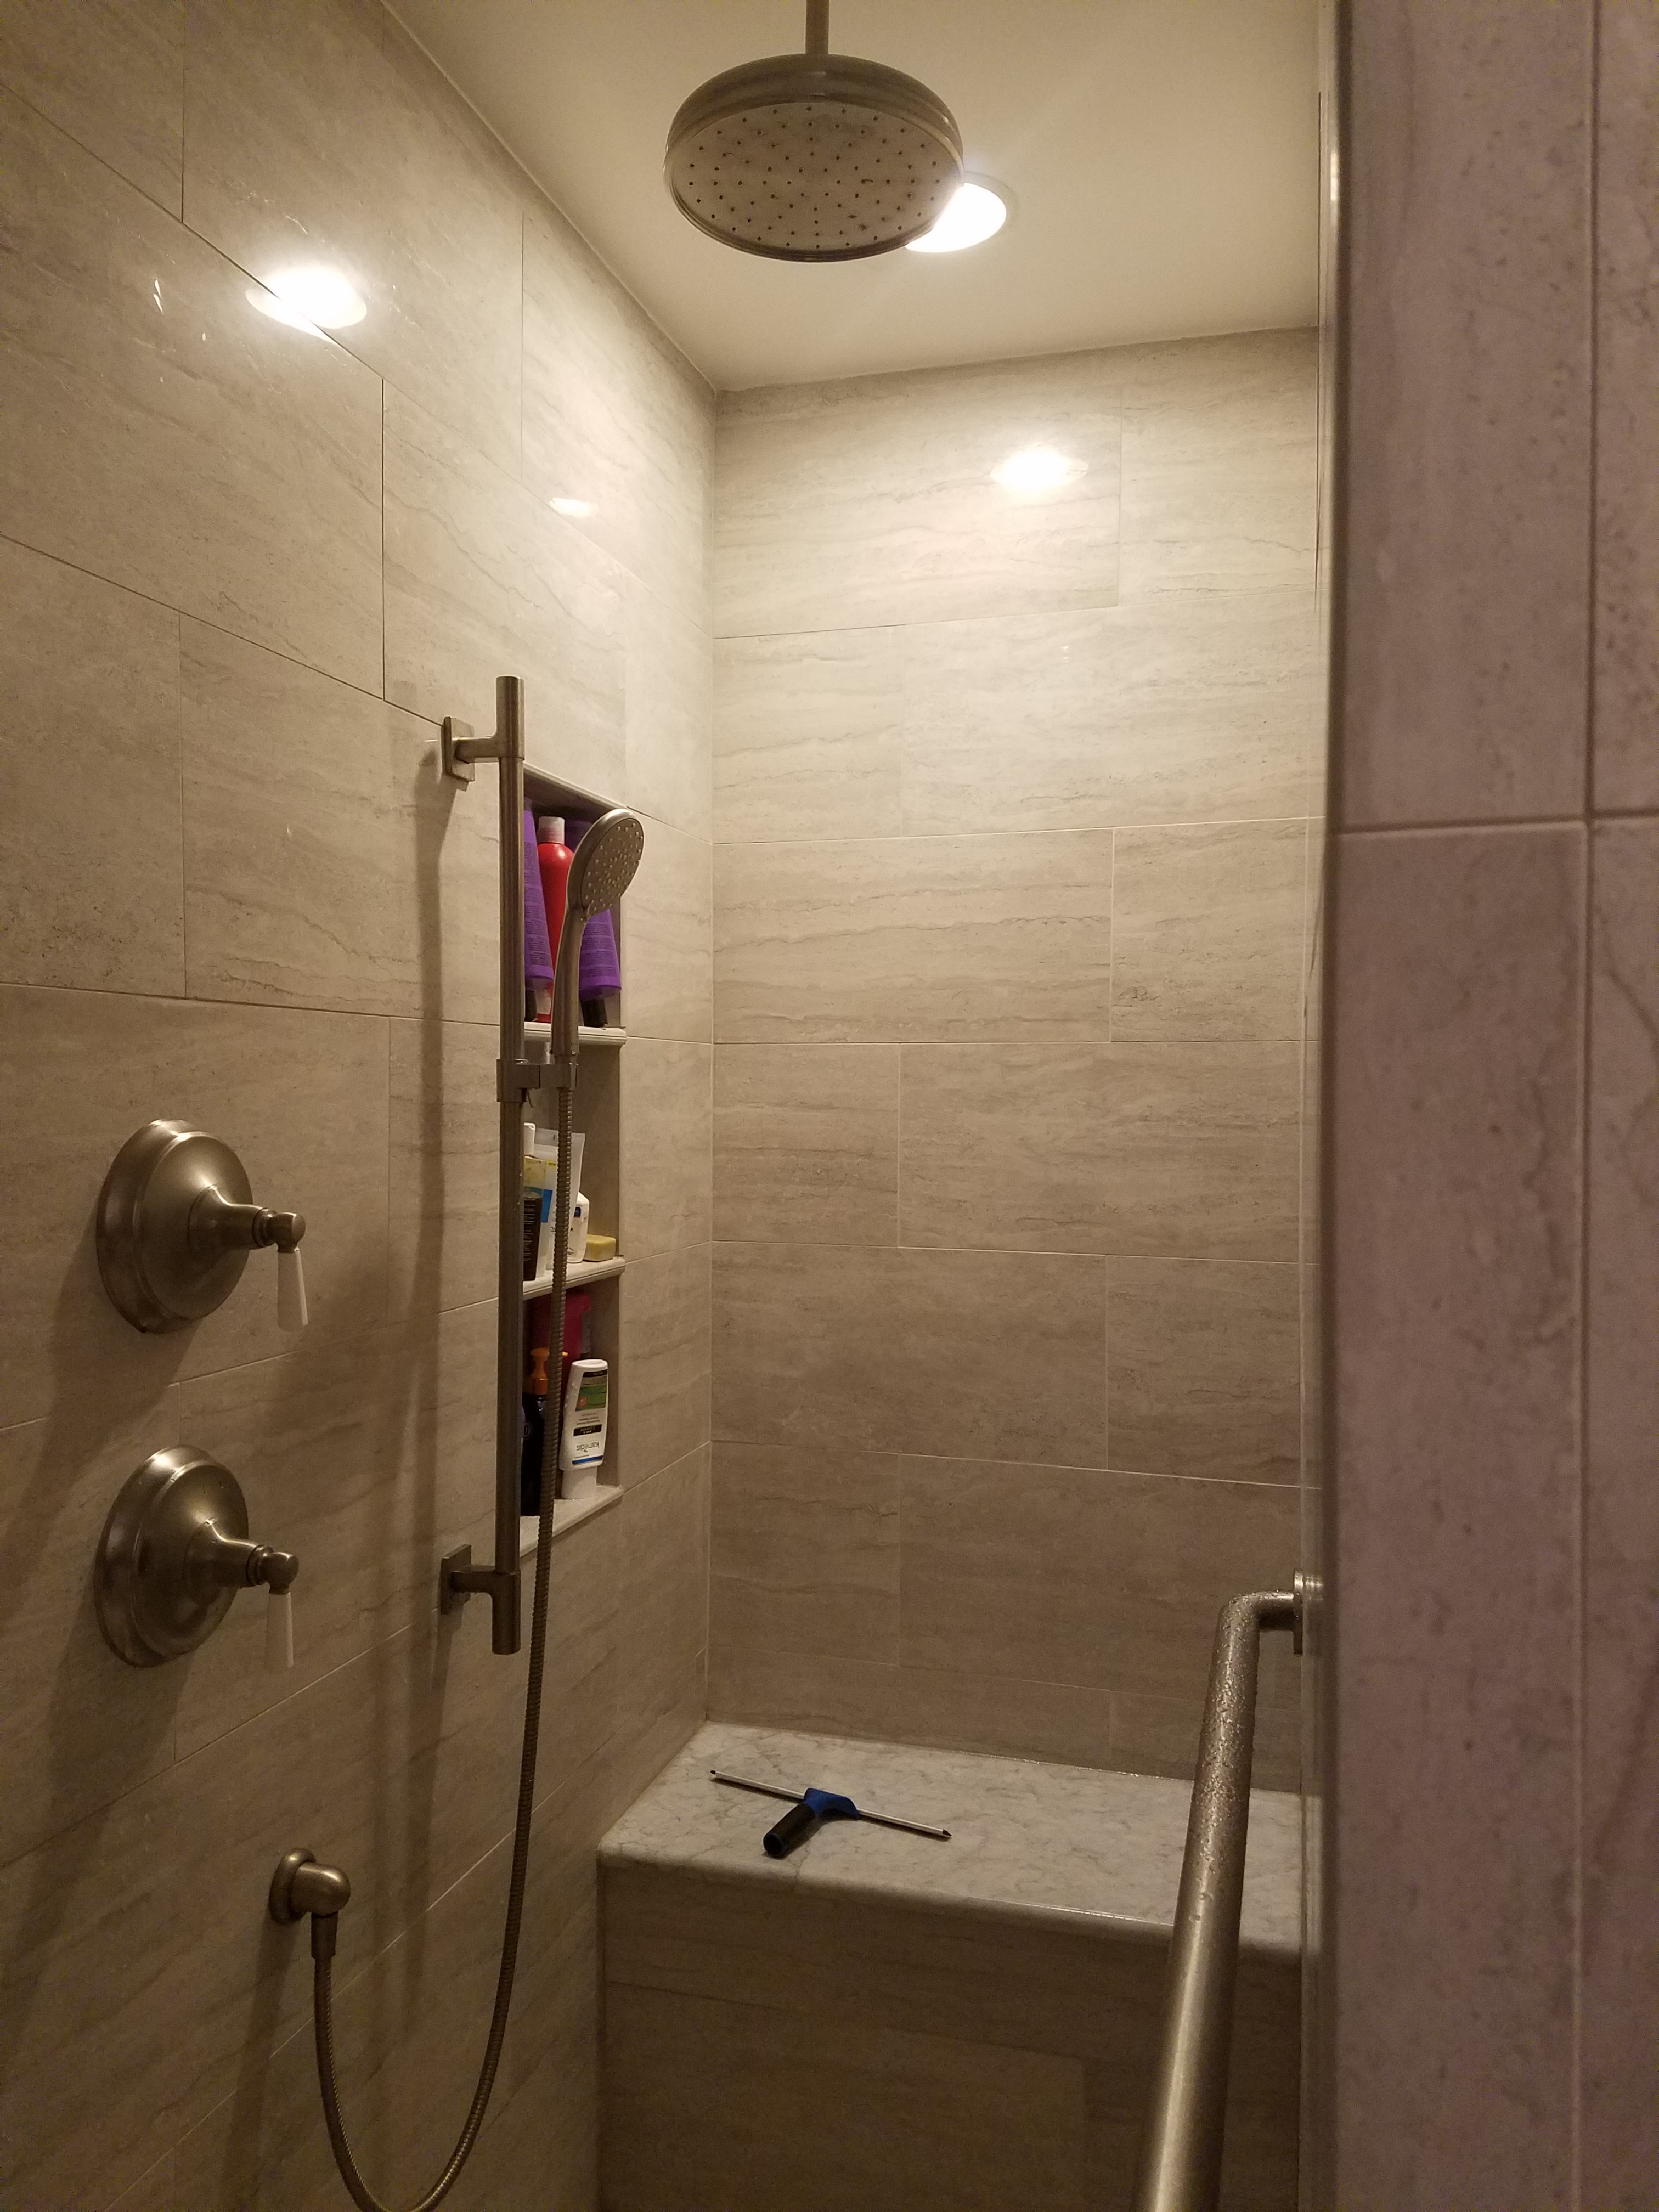 Walk-in shower, rainhead shower